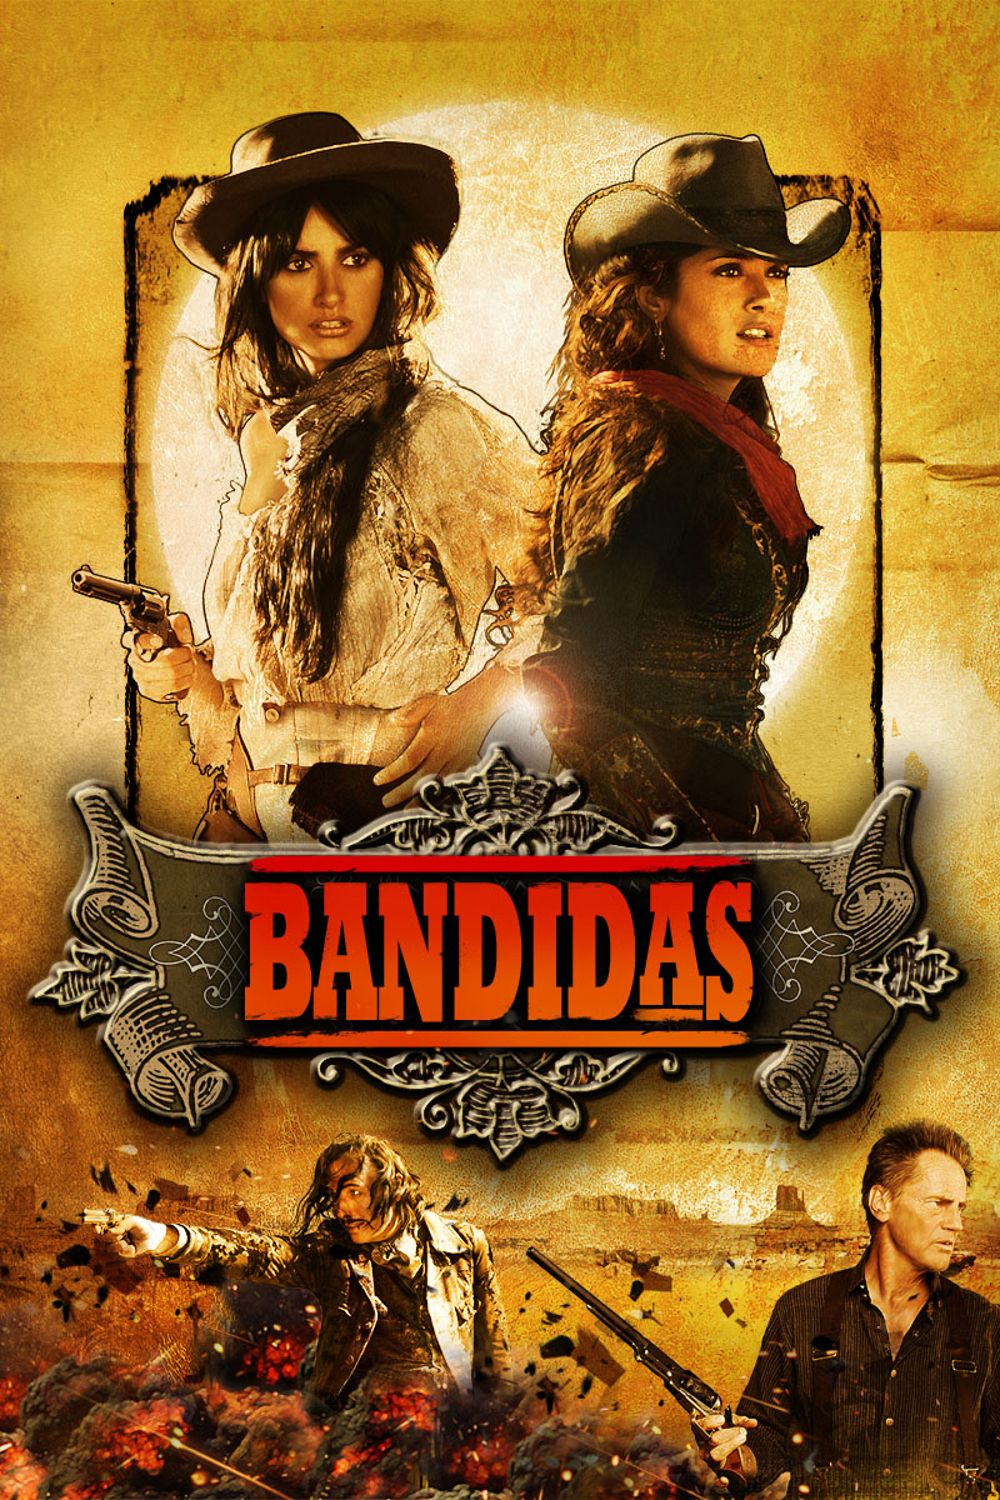 click image to watch Bandidas (2006) (With images) Full